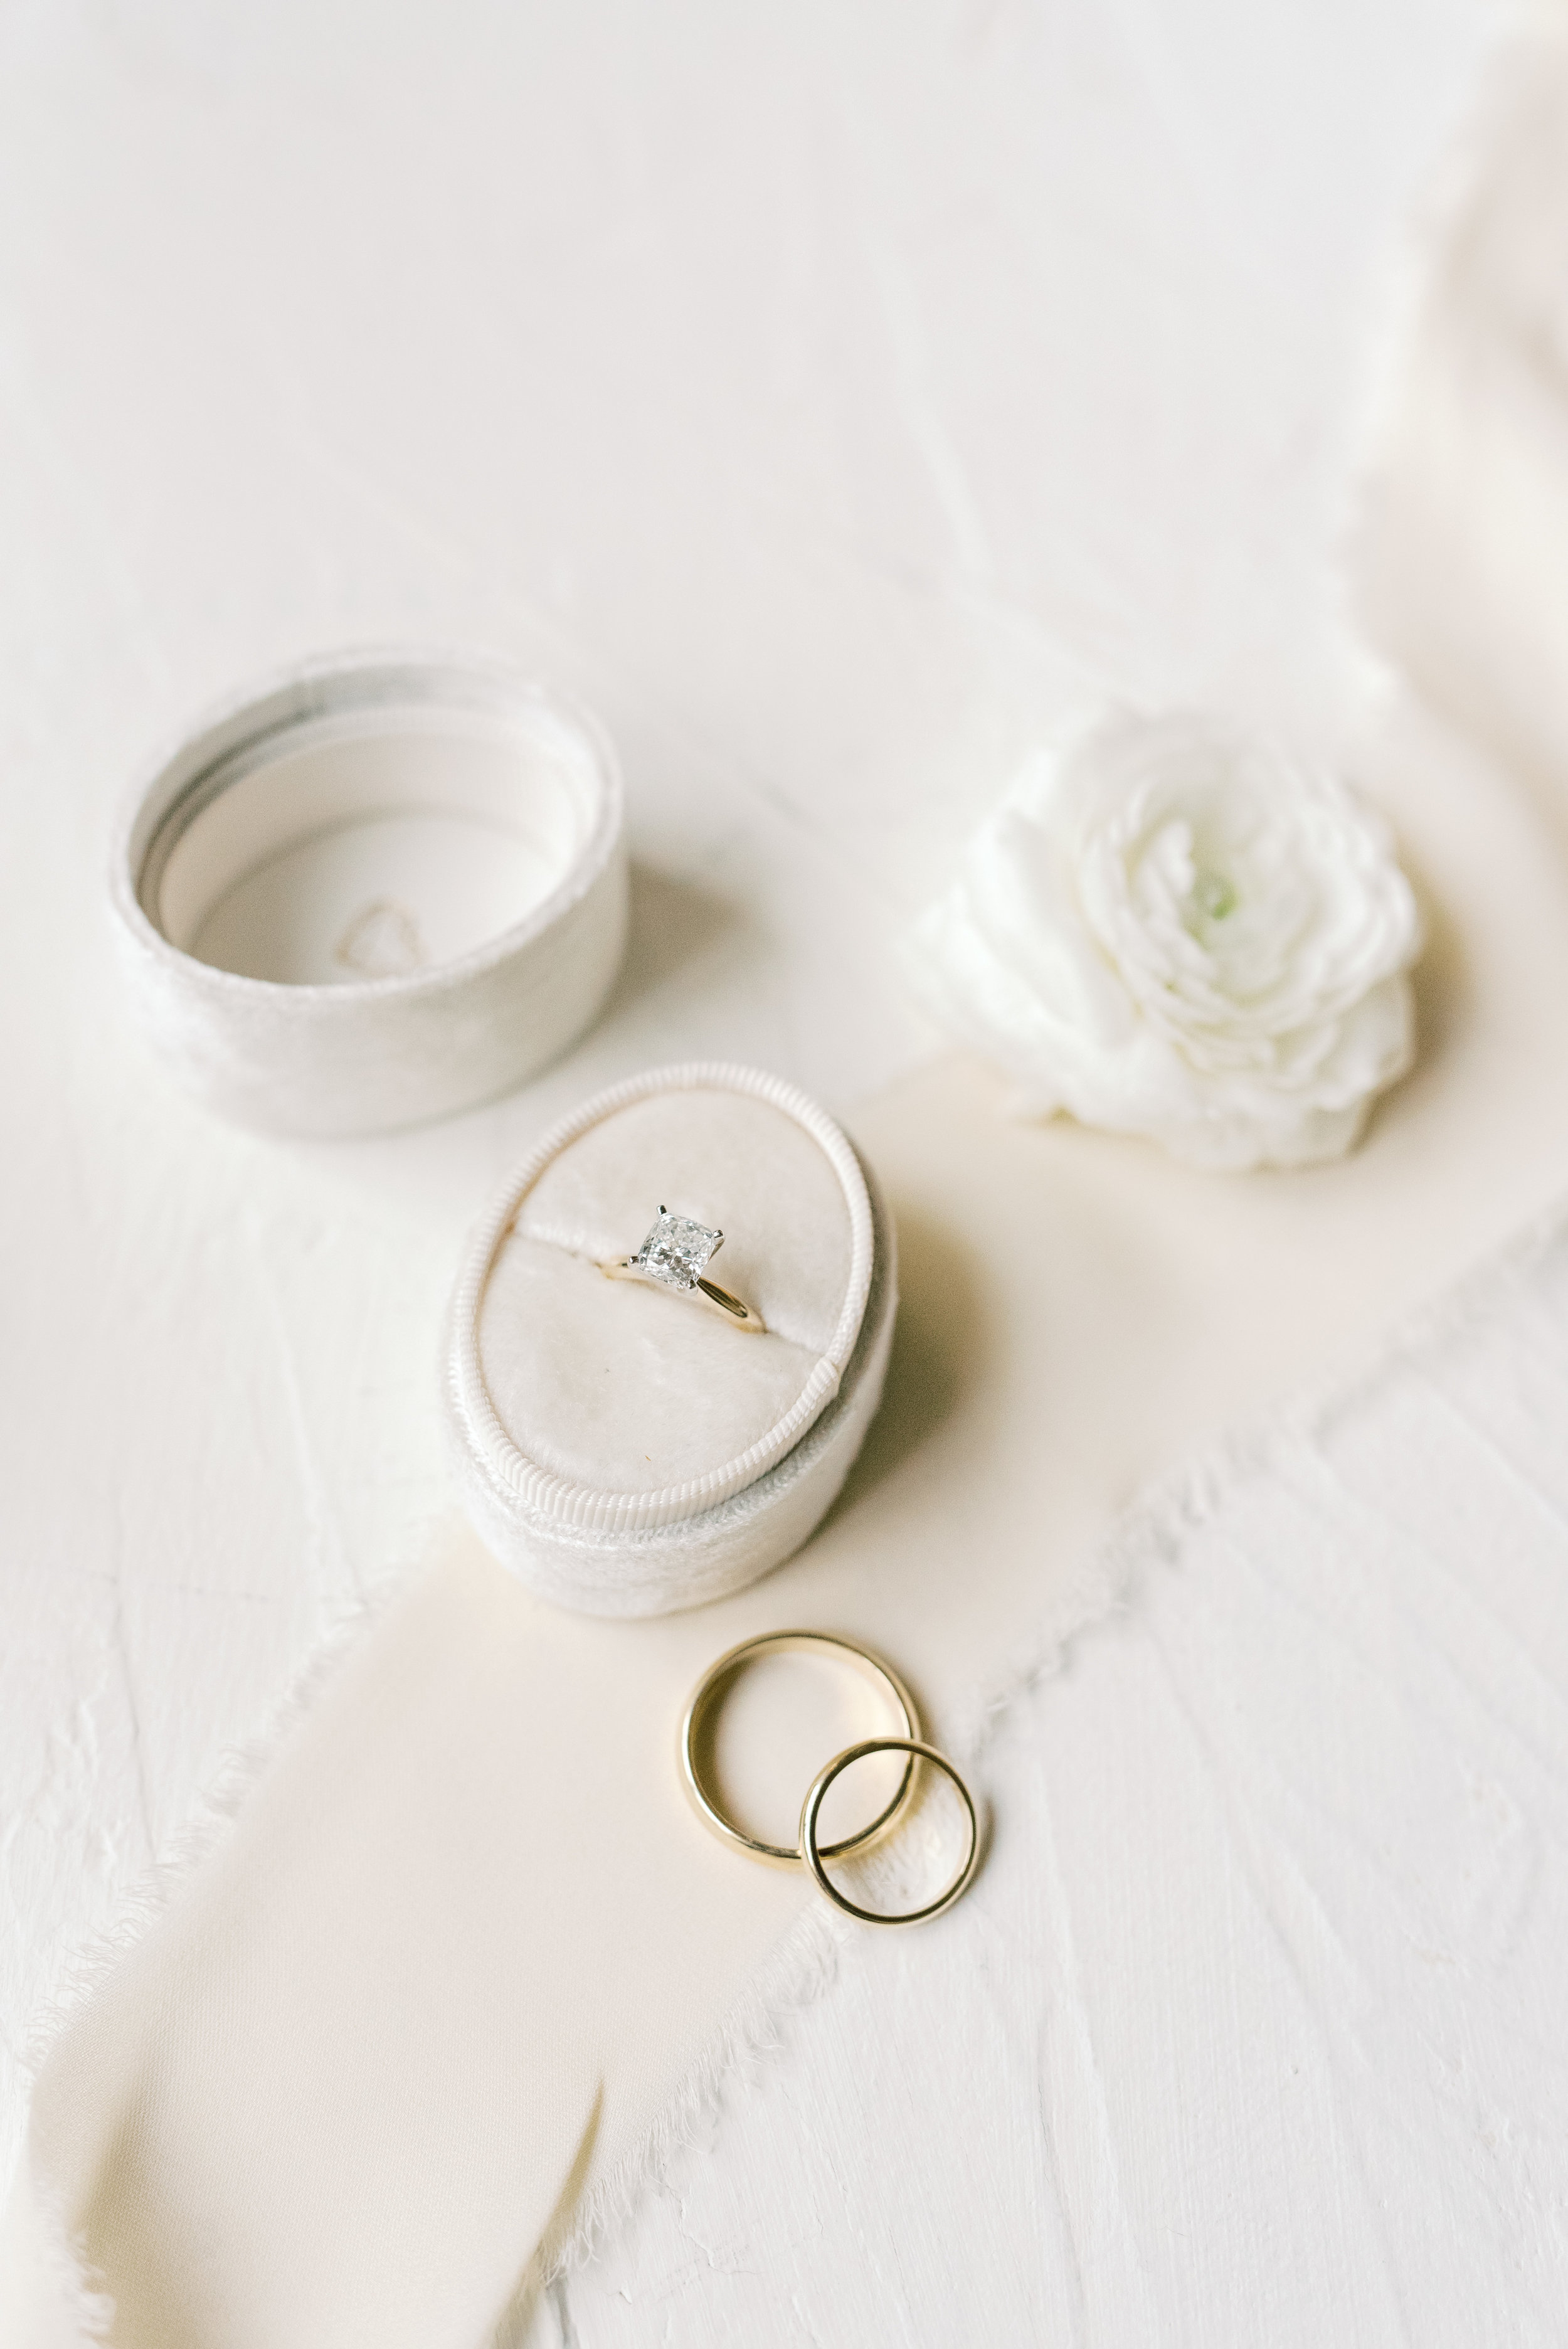 This classic gold band wedding ring with white diamond had our hearts aflutter from this romantic and classic wedding day for their french inspired green and white Cairnwood Estate wedding.